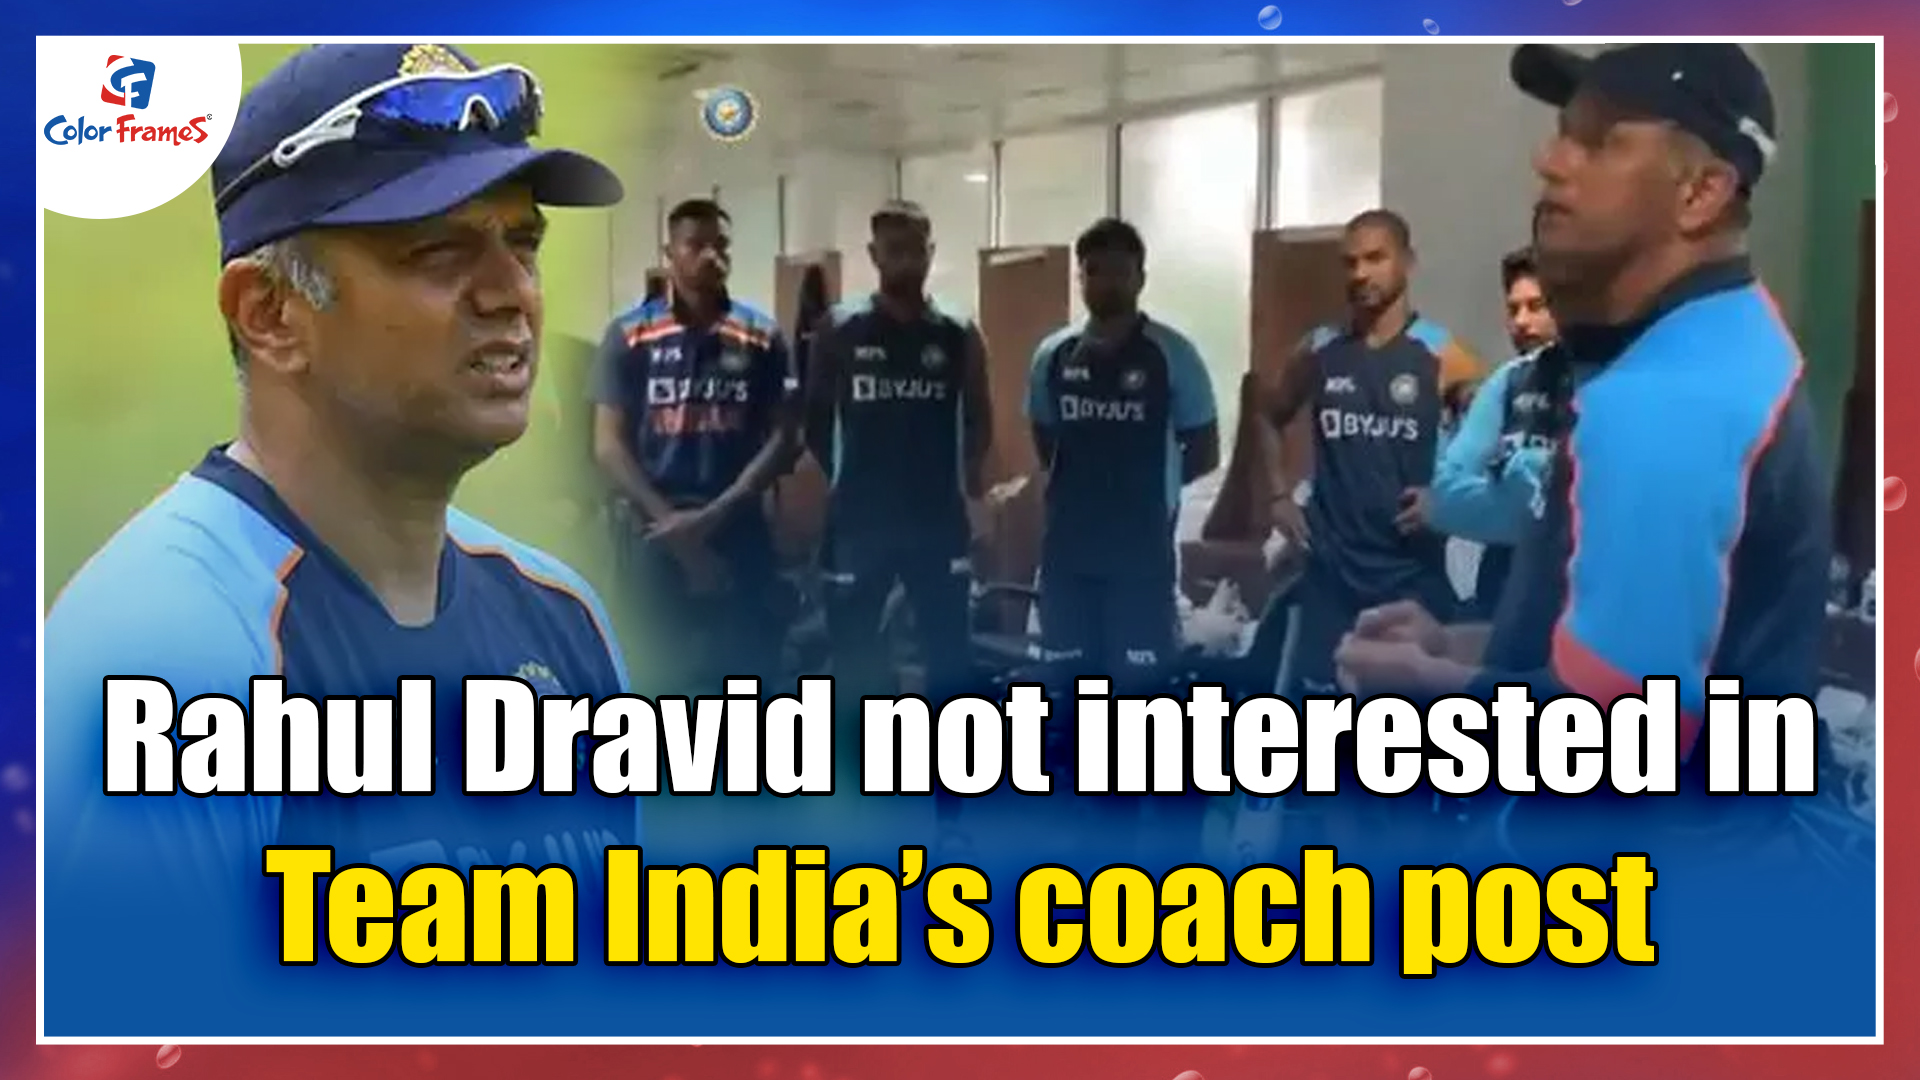 Rahul Dravid not interested in Team India's coach post